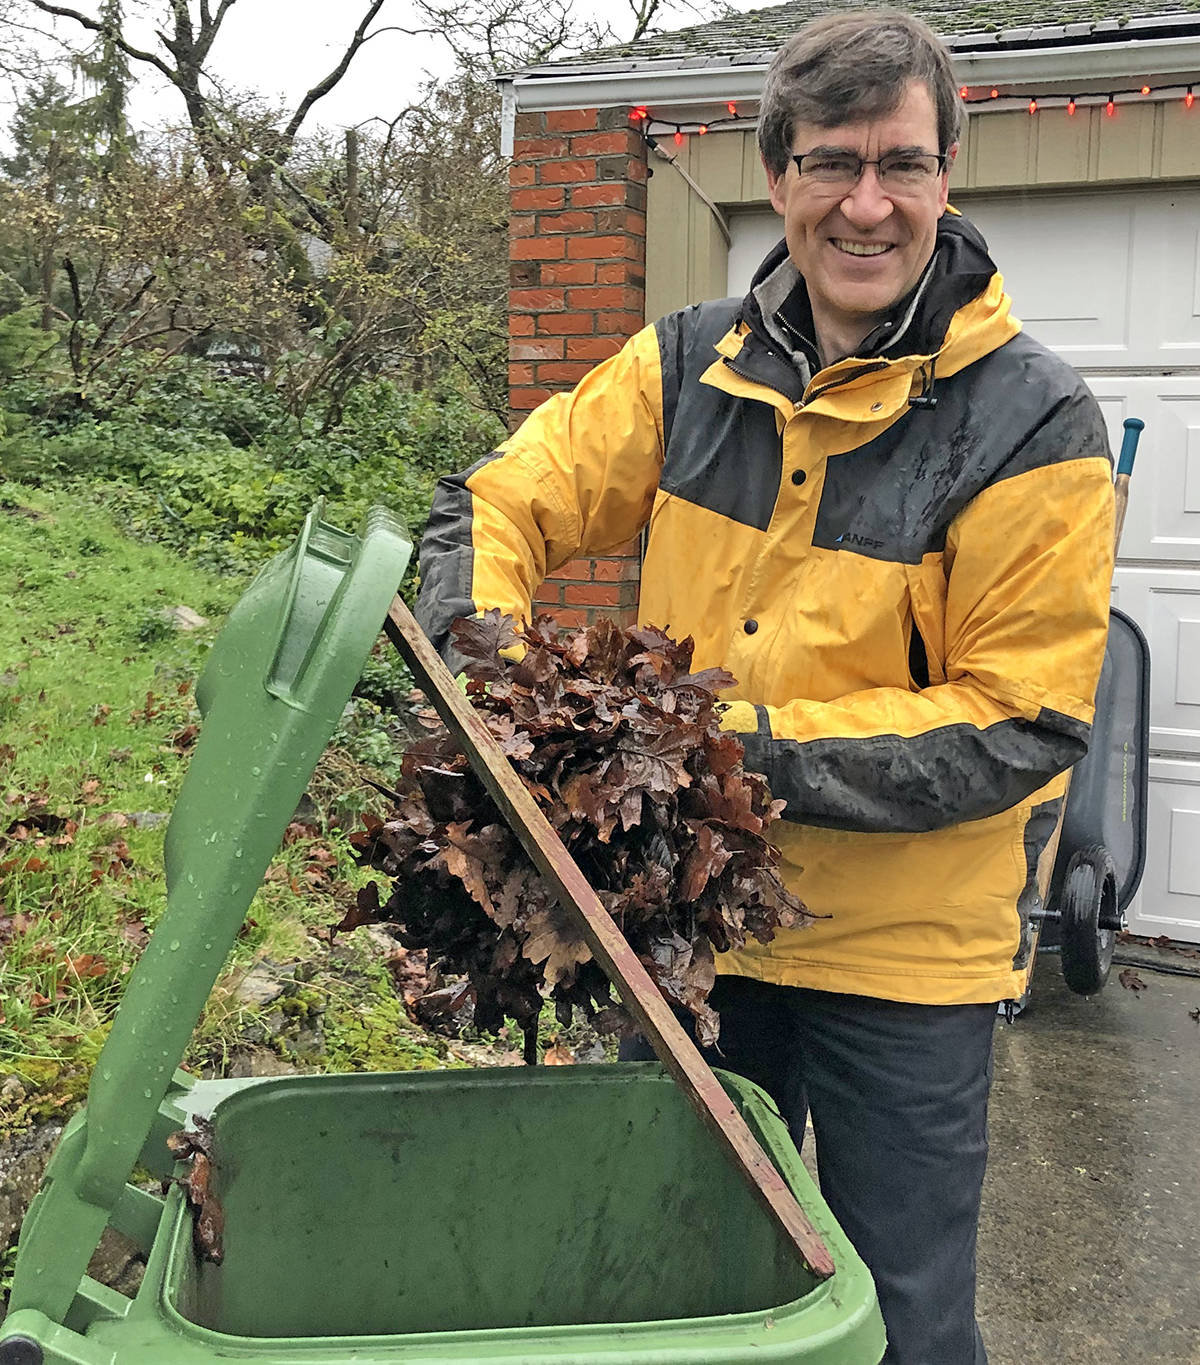 Oak Bay Coun. Eric Zhelka scoops excess leaves into his kitchen waste bin. The District of Oak Bay's contract for kitchen waste pickup now permits the inclusion of general yard waste. (Travis Paterson/News Staff)